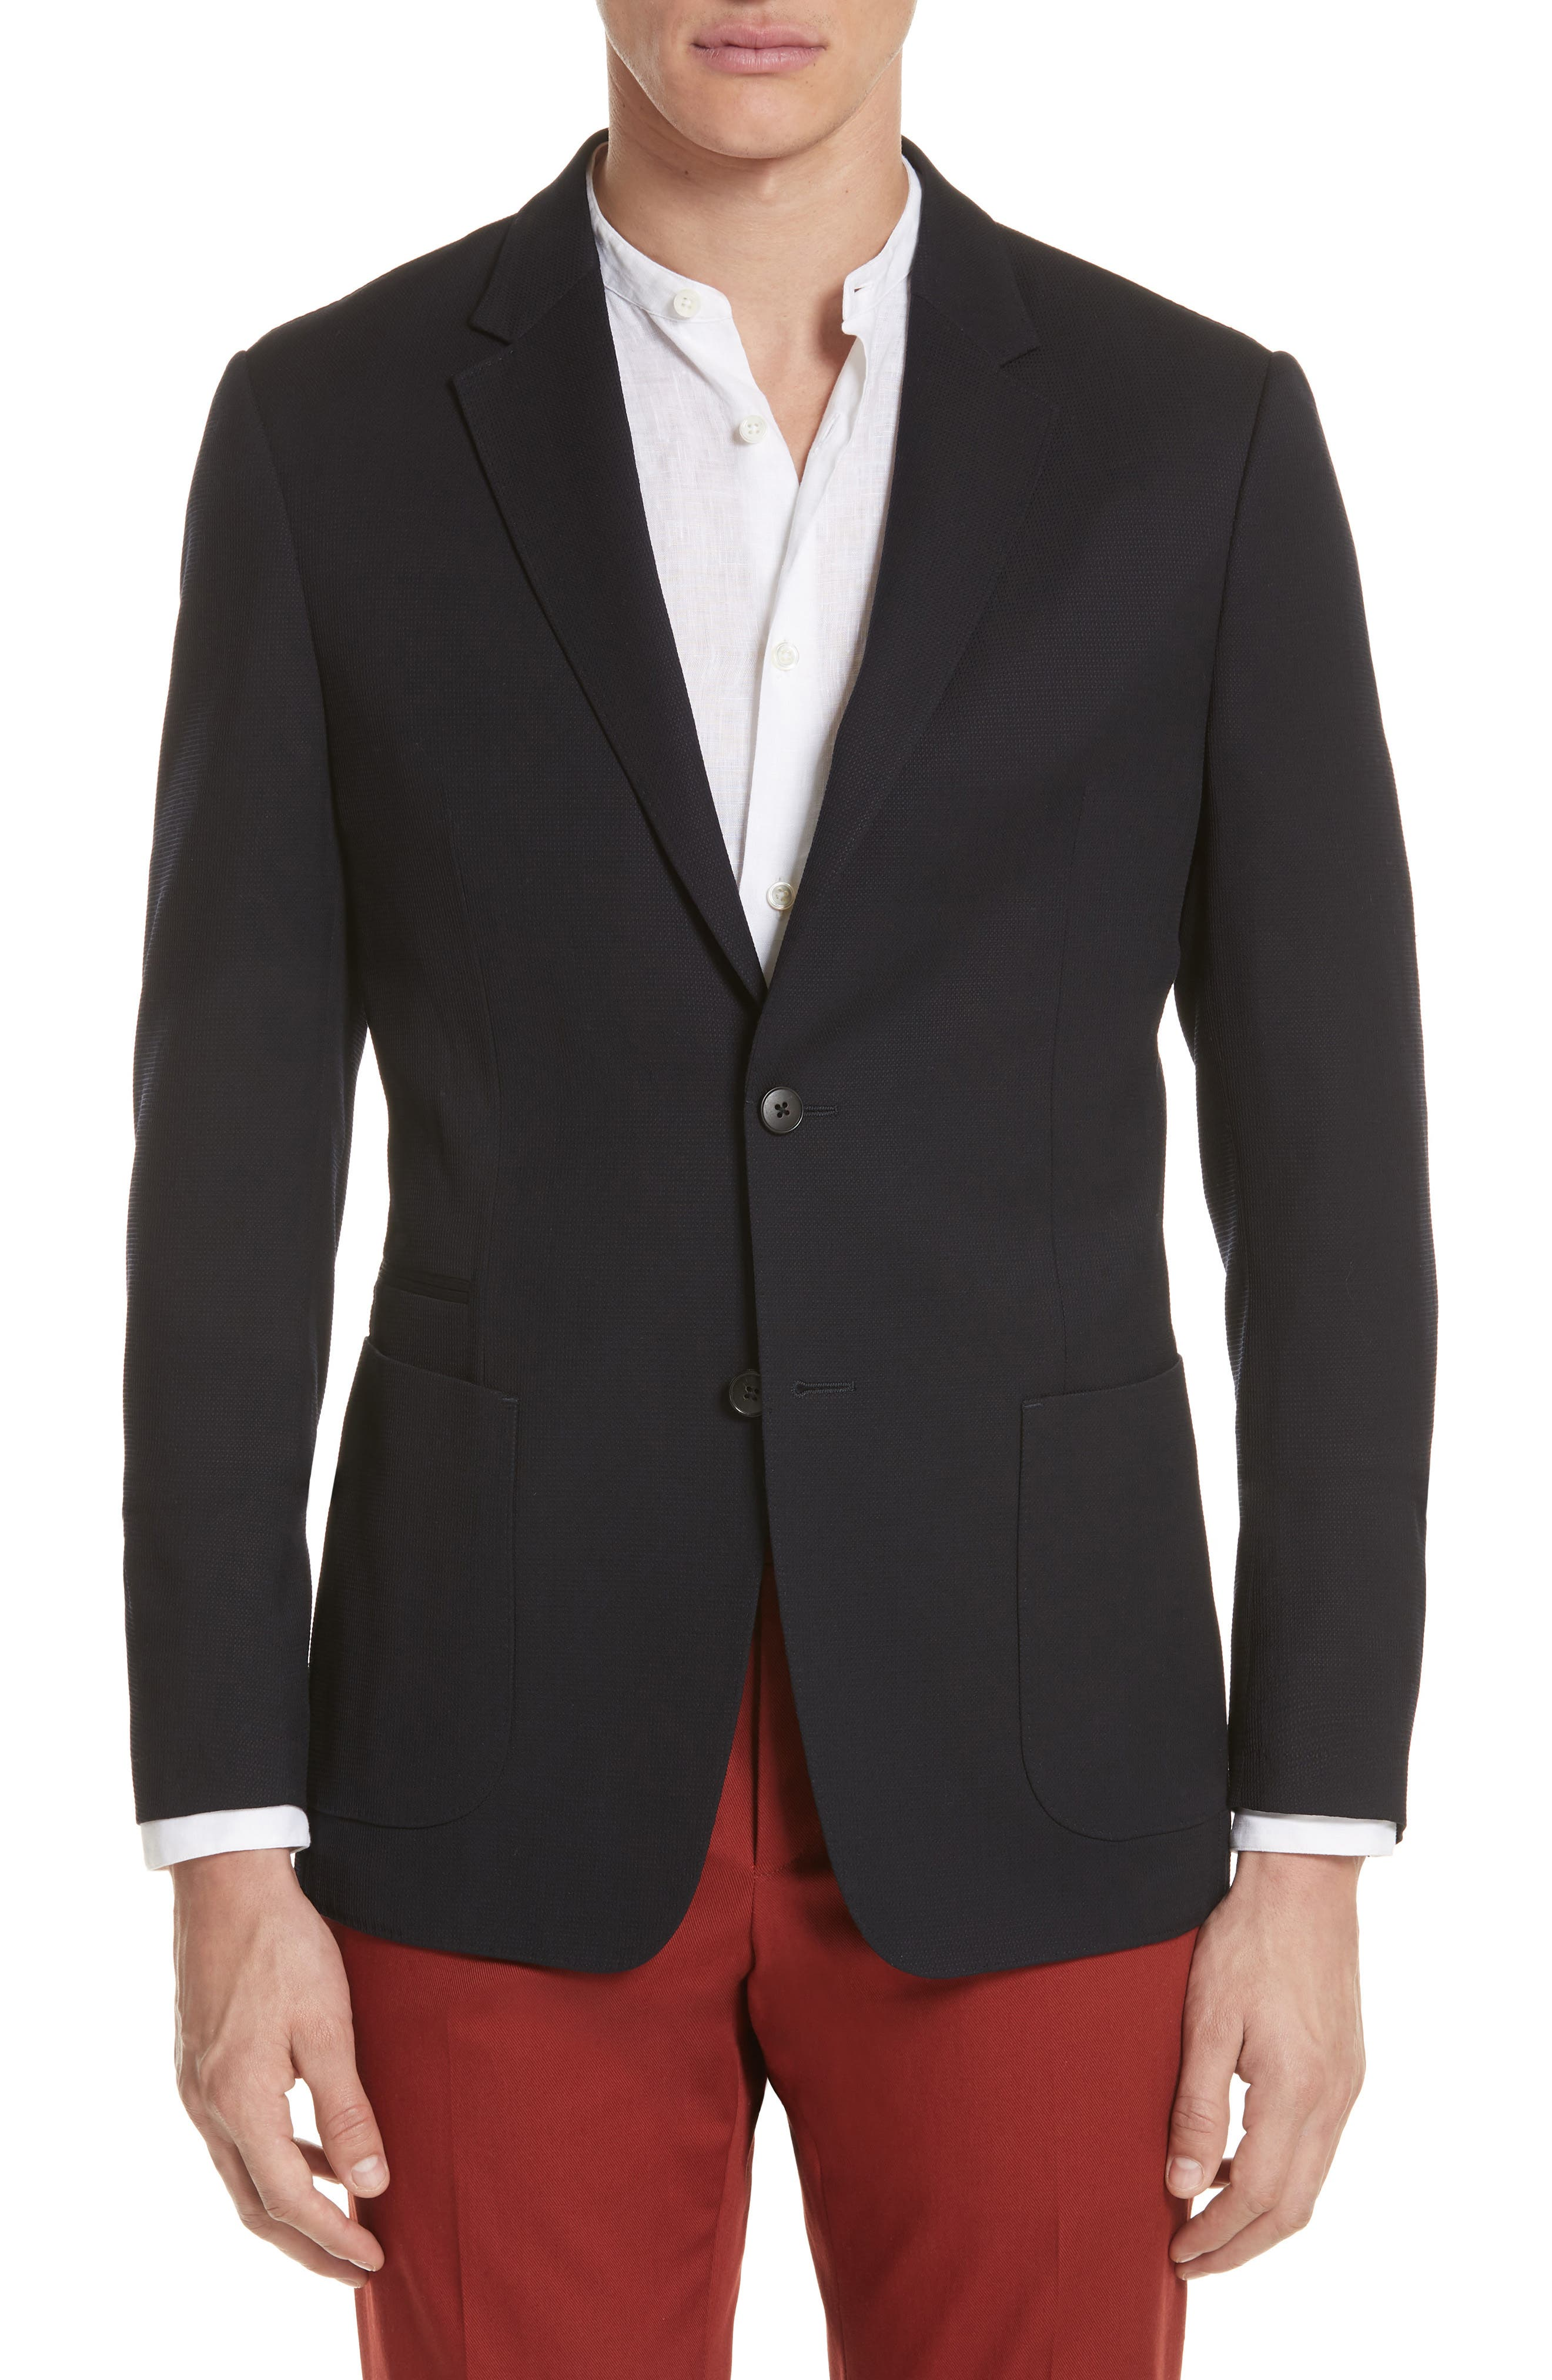 TECHMERINO<sup>™</sup> Wash & Go Classic Fit Wool Blazer,                             Main thumbnail 1, color,                             Navy Solid